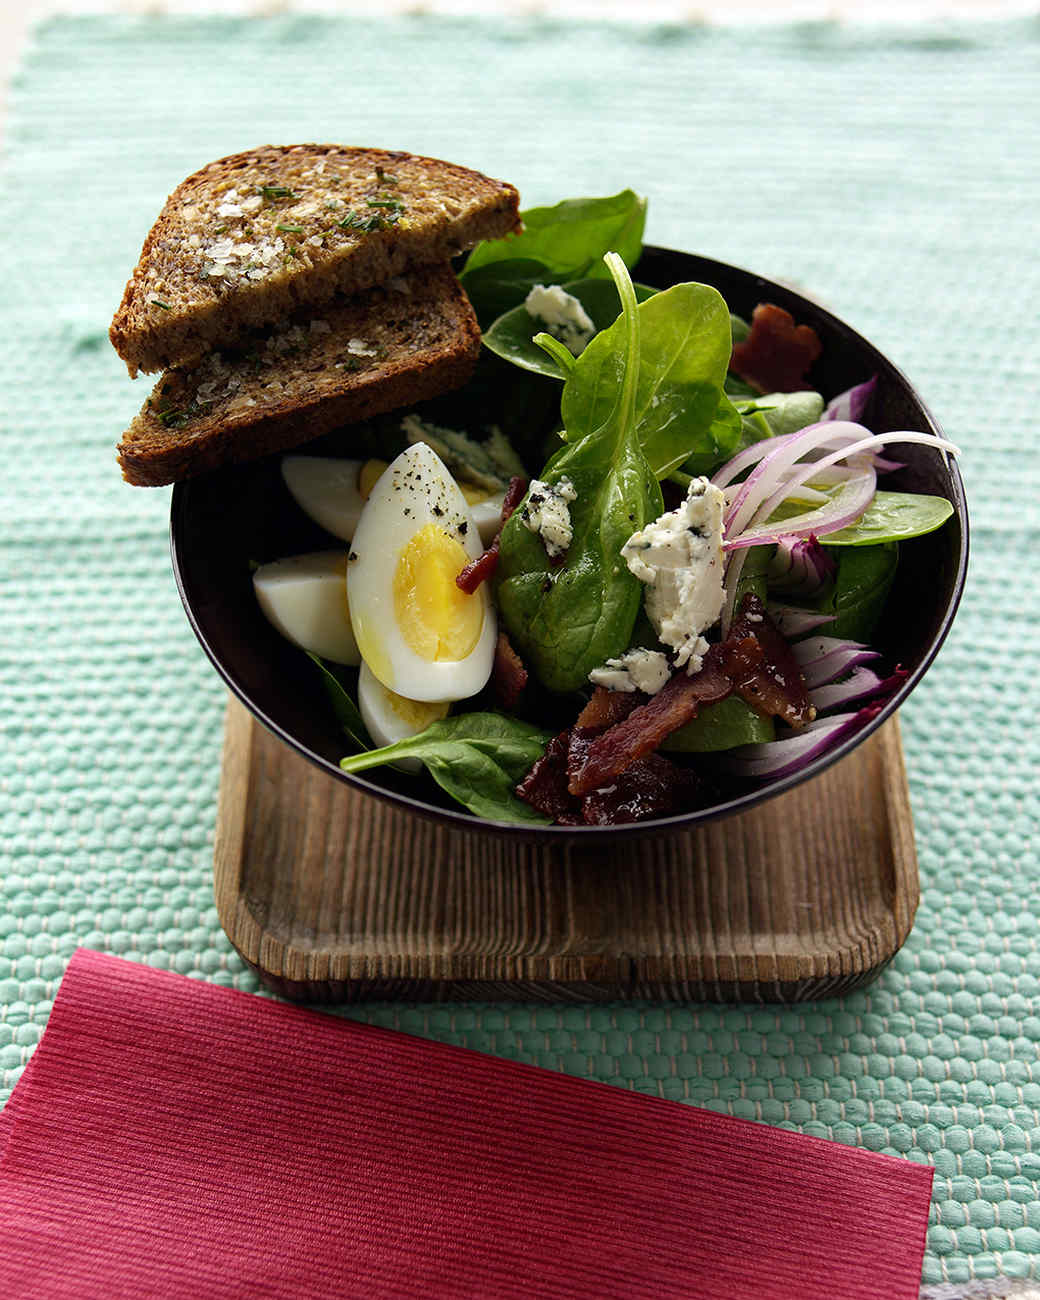 Spinach Salad with Turkey Bacon and Blue Cheese